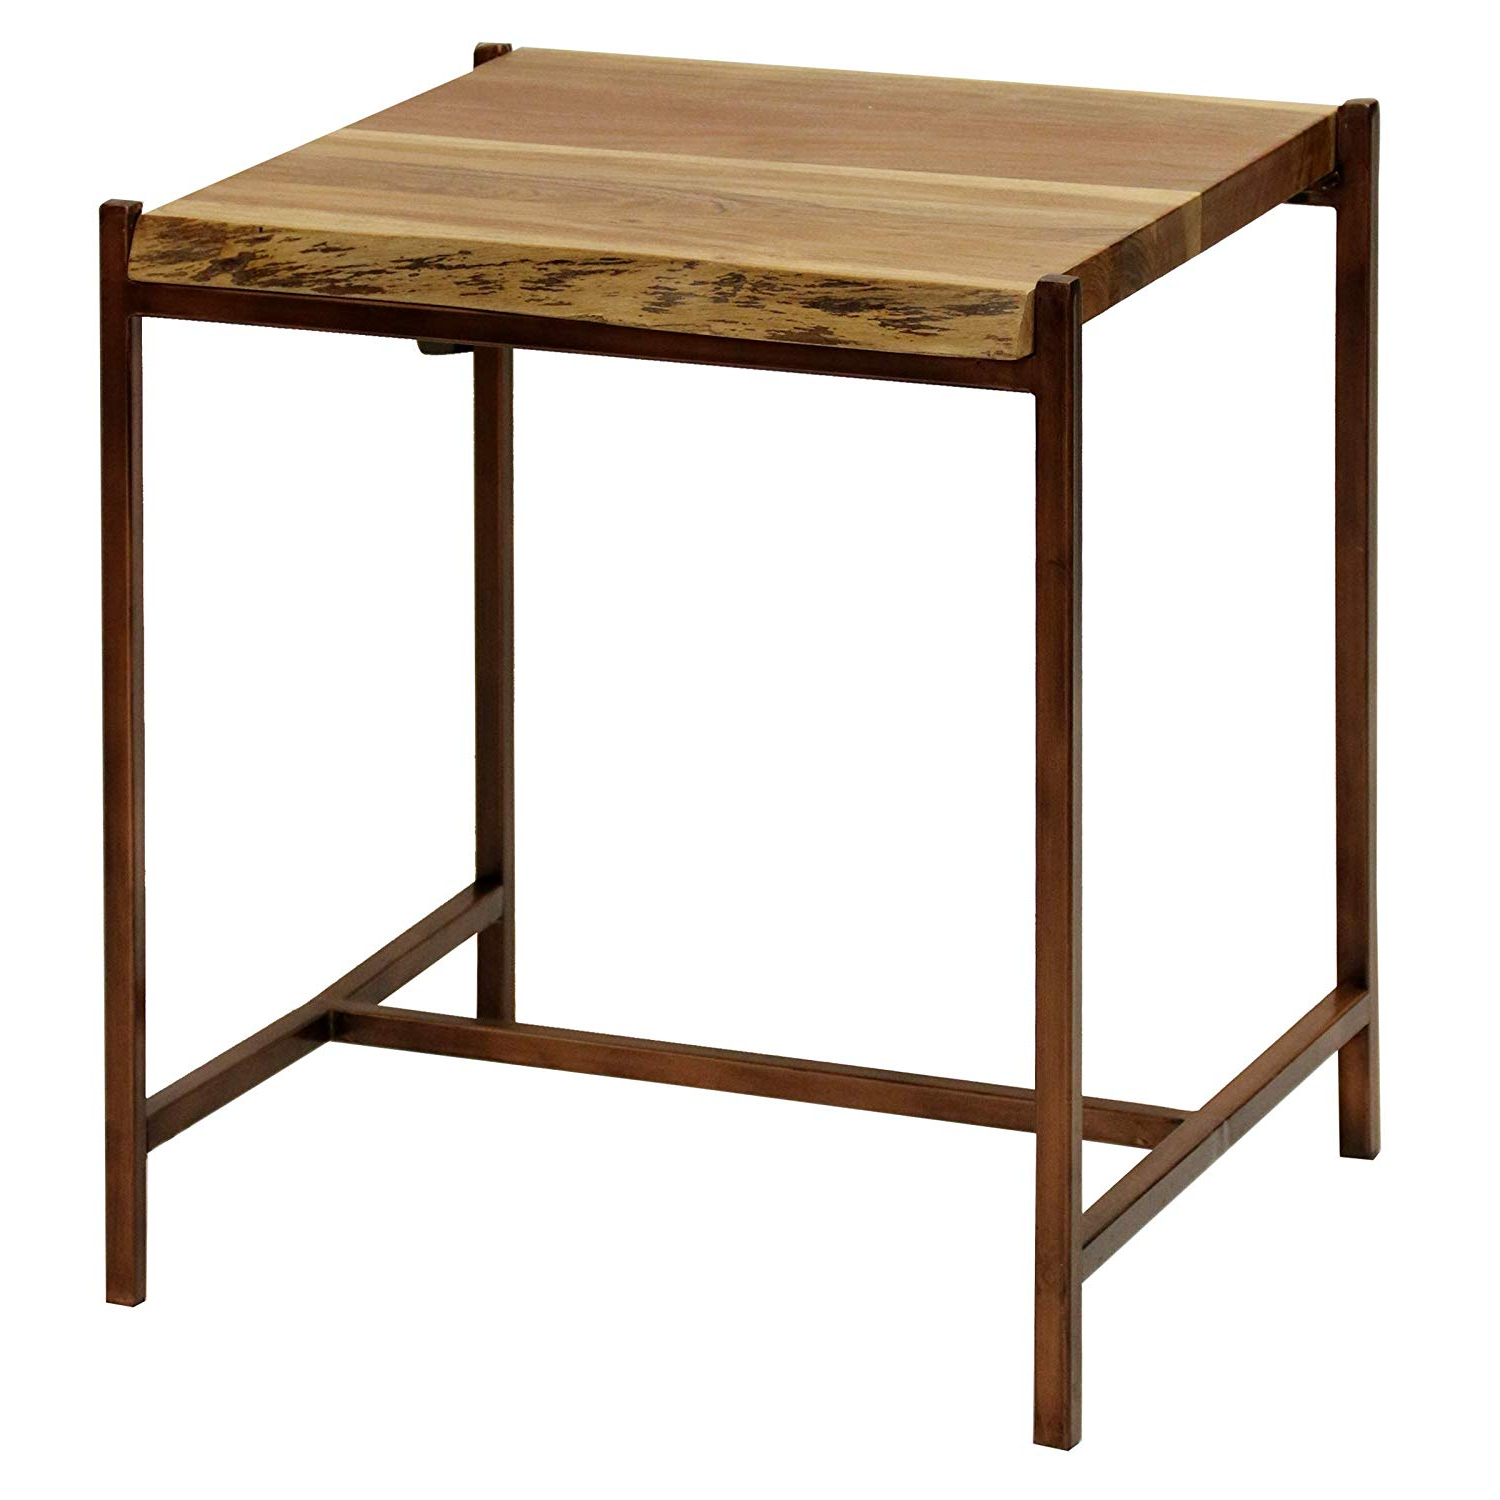 Amazon: Collective Design Transitional Solid Acacia Wood Within Most Recently Released Acacia Dining Tables With Black Rocket Legs (View 9 of 30)